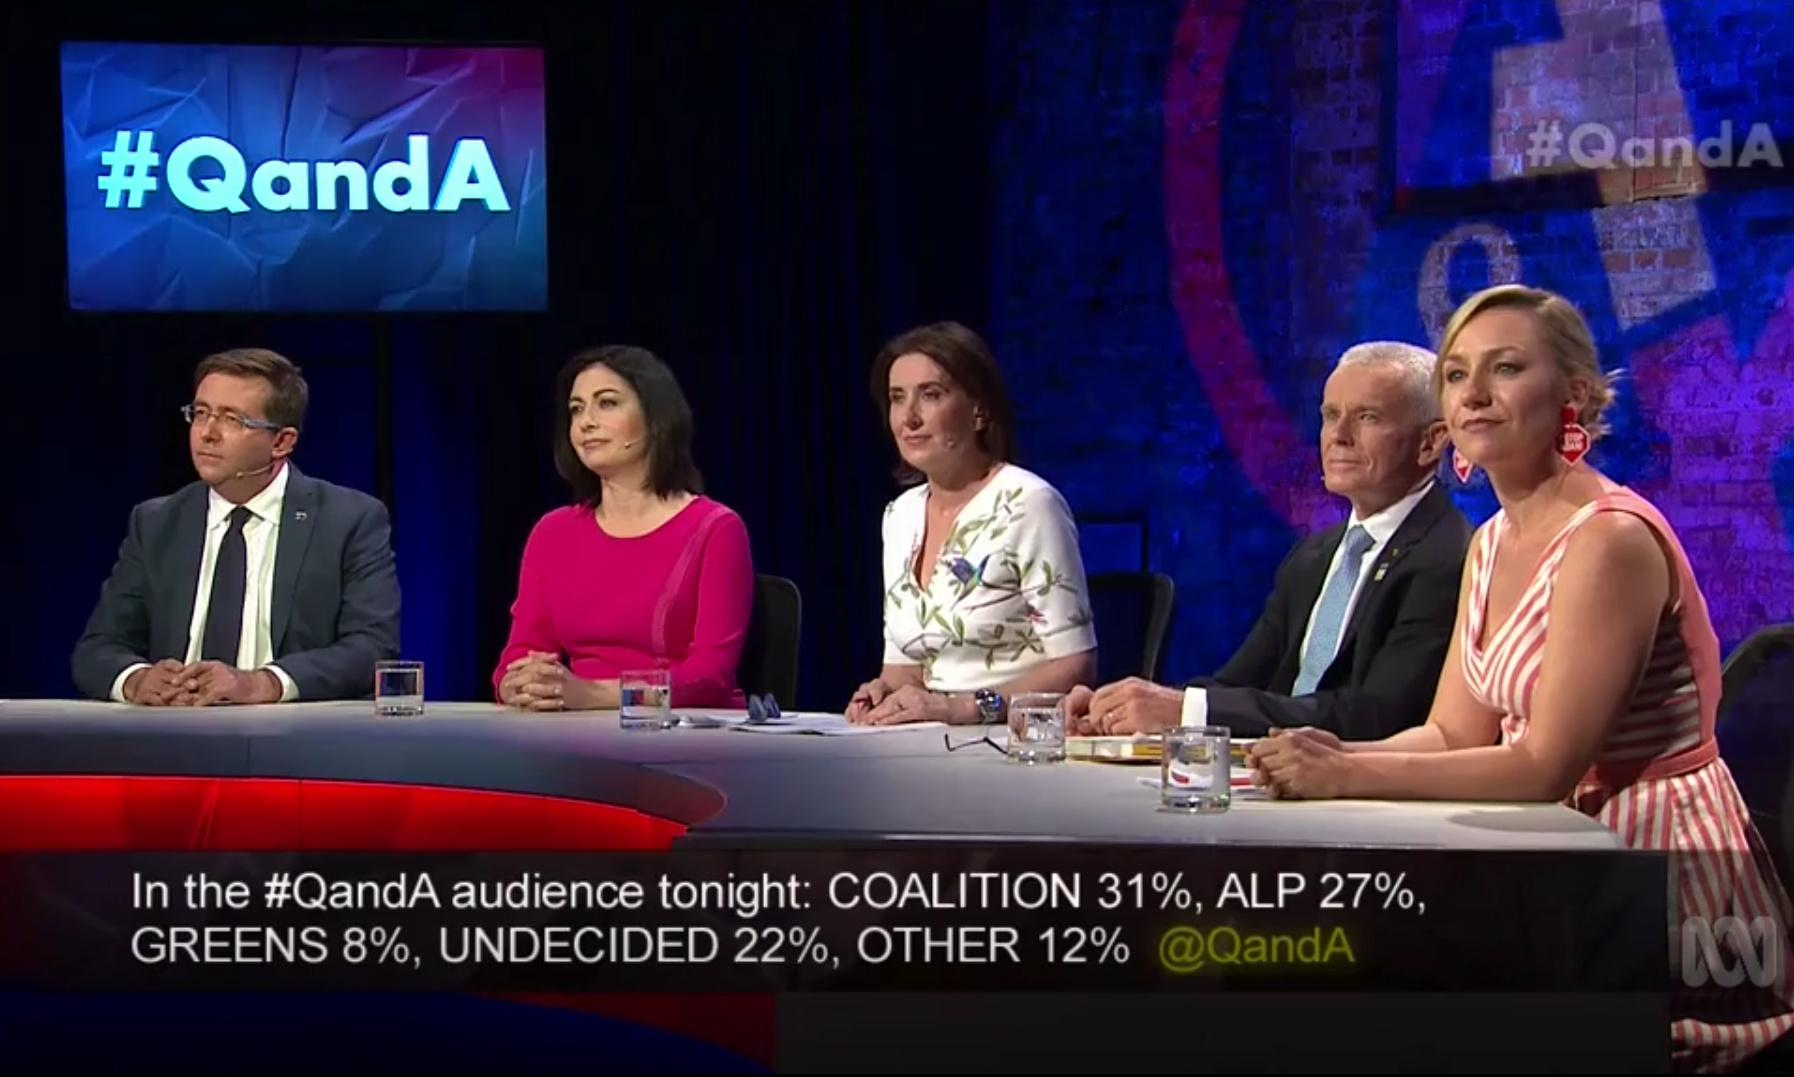 The bad show? Q&A attacked from left and right, but remains unrepentant